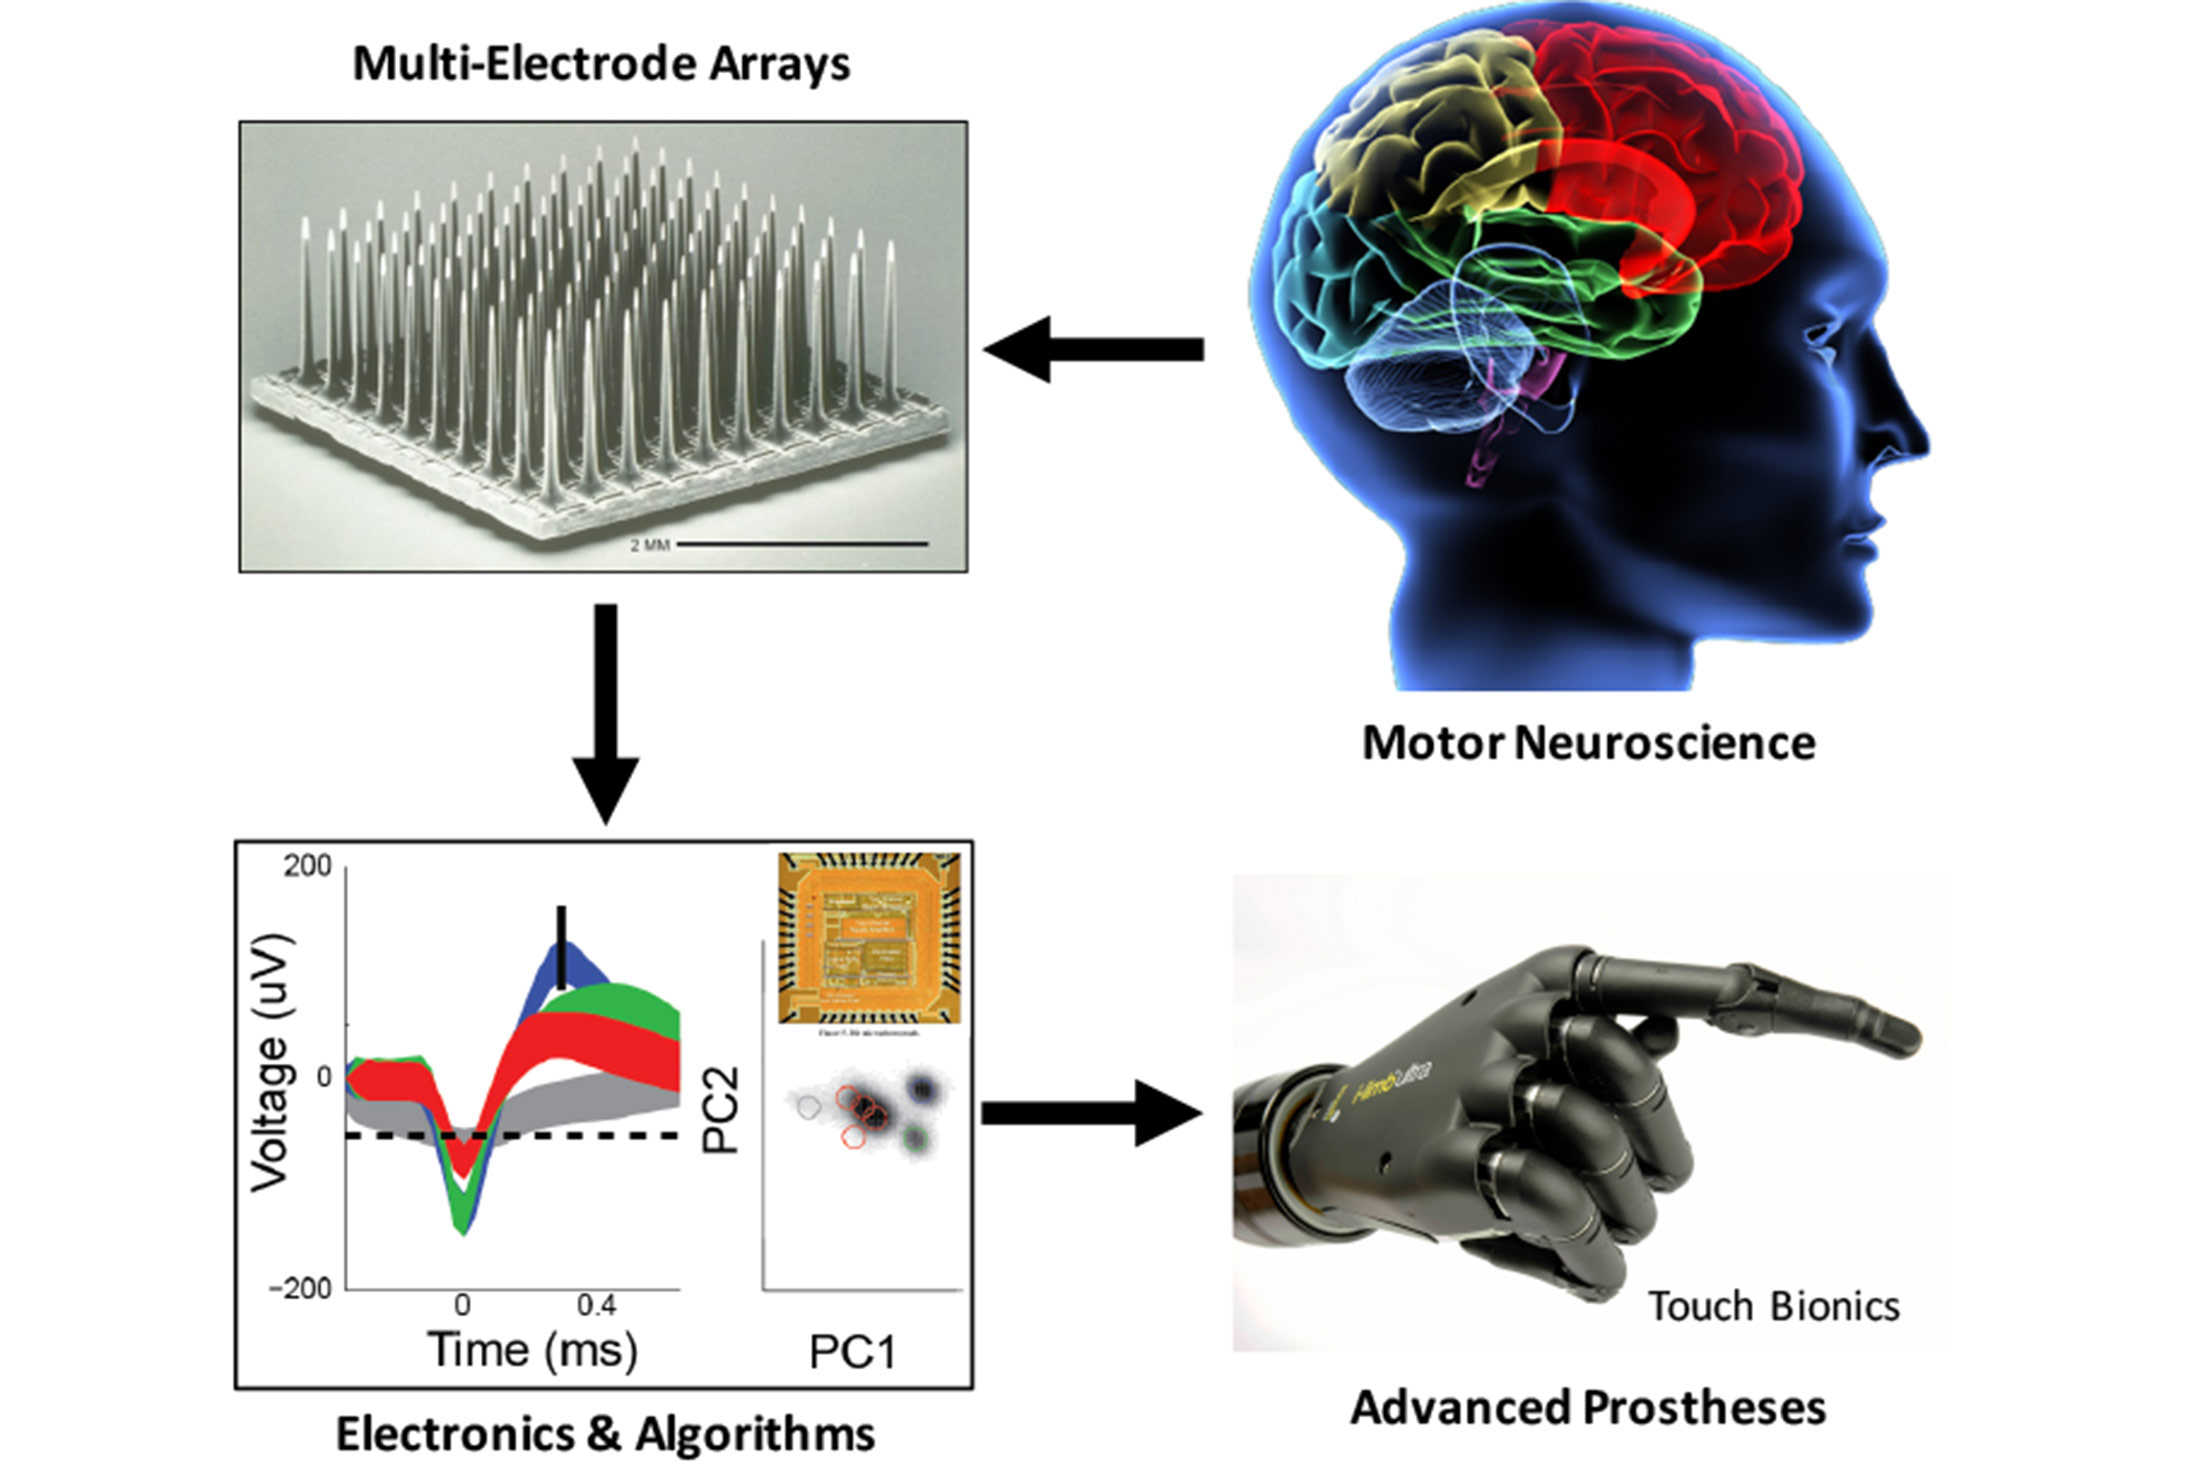 Overview of Brain Machine Interface research happening at BI